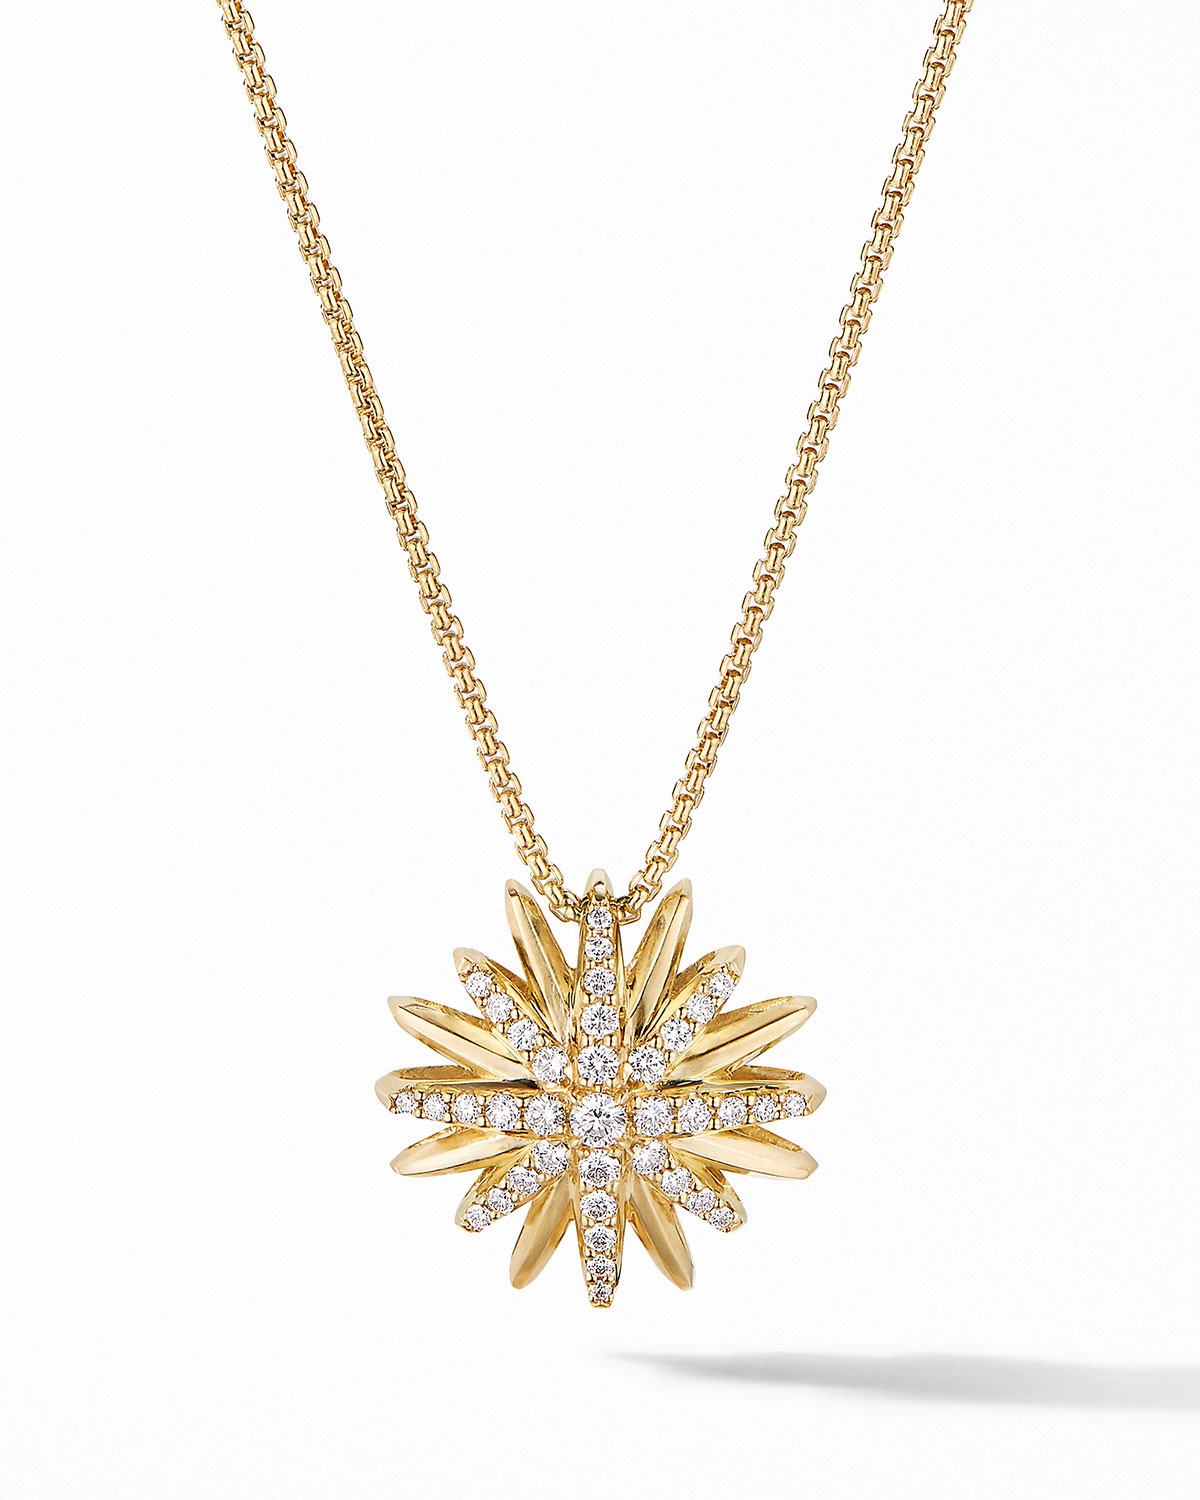 David Yurman Women's Starburst Pendant Necklace In 18k Yellow Gold With Diamonds